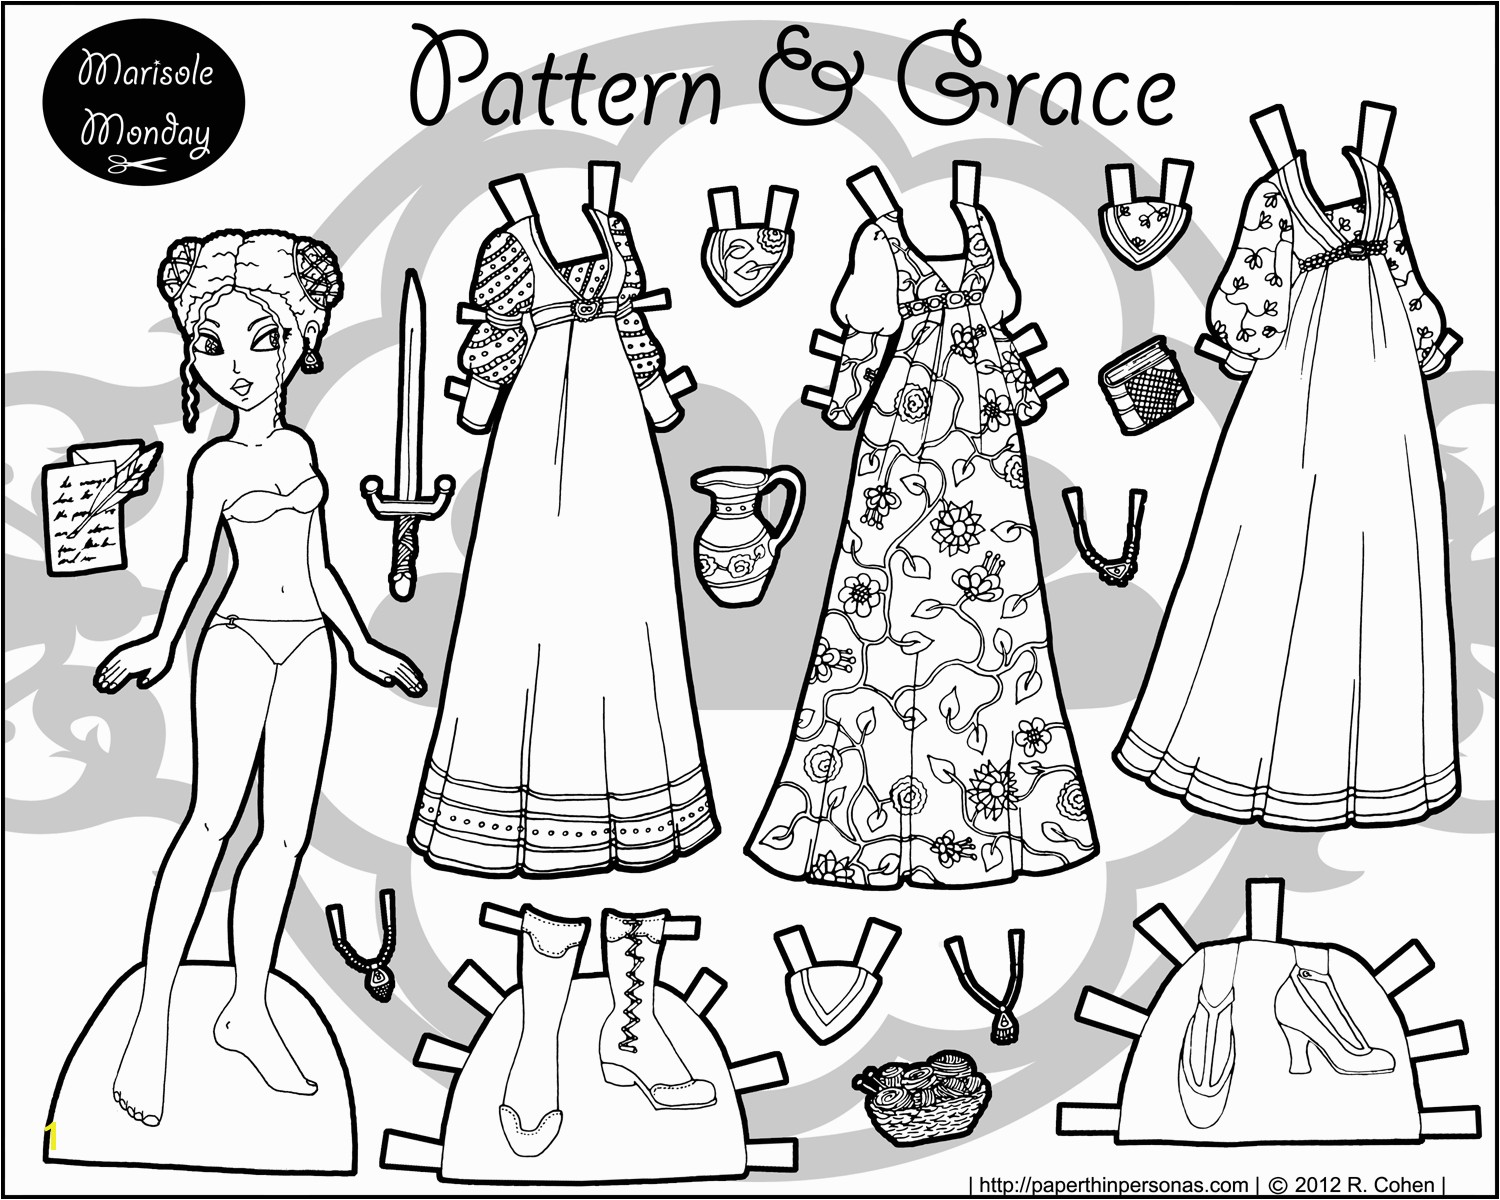 Marisole Monday Paper Doll Coloring Pages Patterns & Grace A Black & White Fantasy Paper Doll